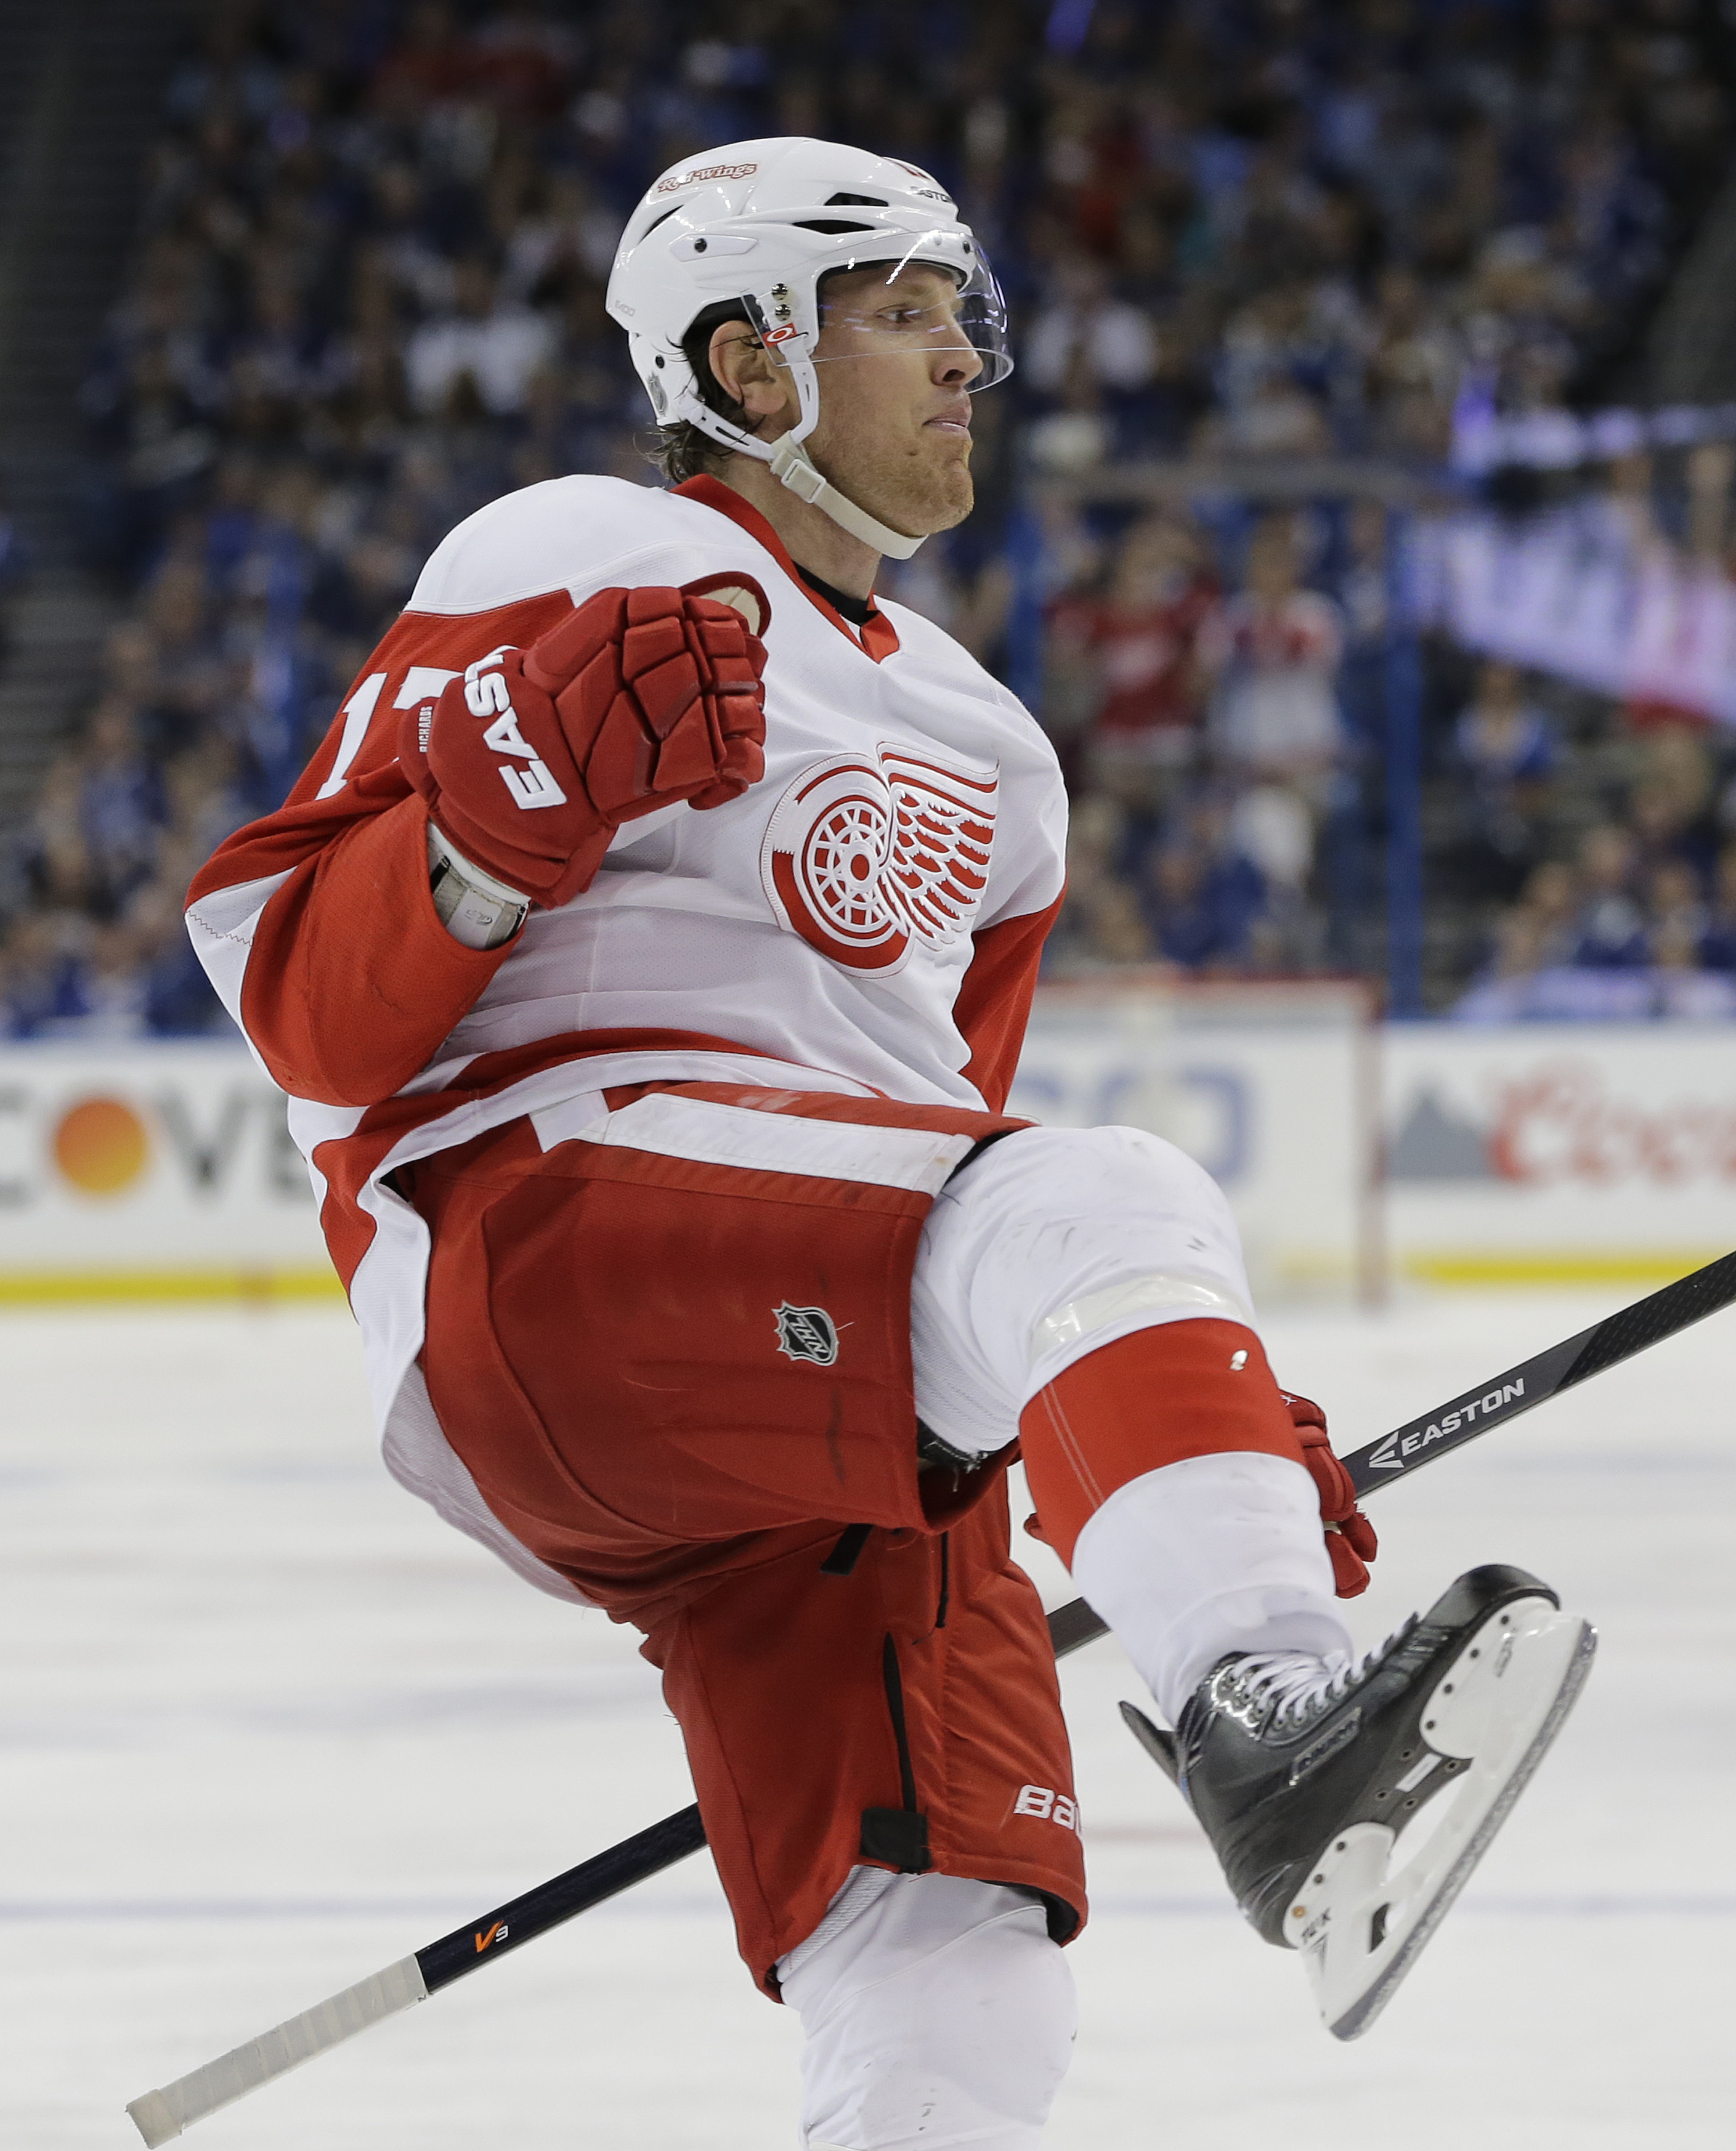 Detroit Red Wings center Brad Richards celebrates his goal against the Tampa Bay Lightning during the third period of Game 2 in a first-round NHL hockey Stanley Cup playoff series Friday, April 15, 2016, in Tampa, Fla. (AP Photo/Chris O'Meara)